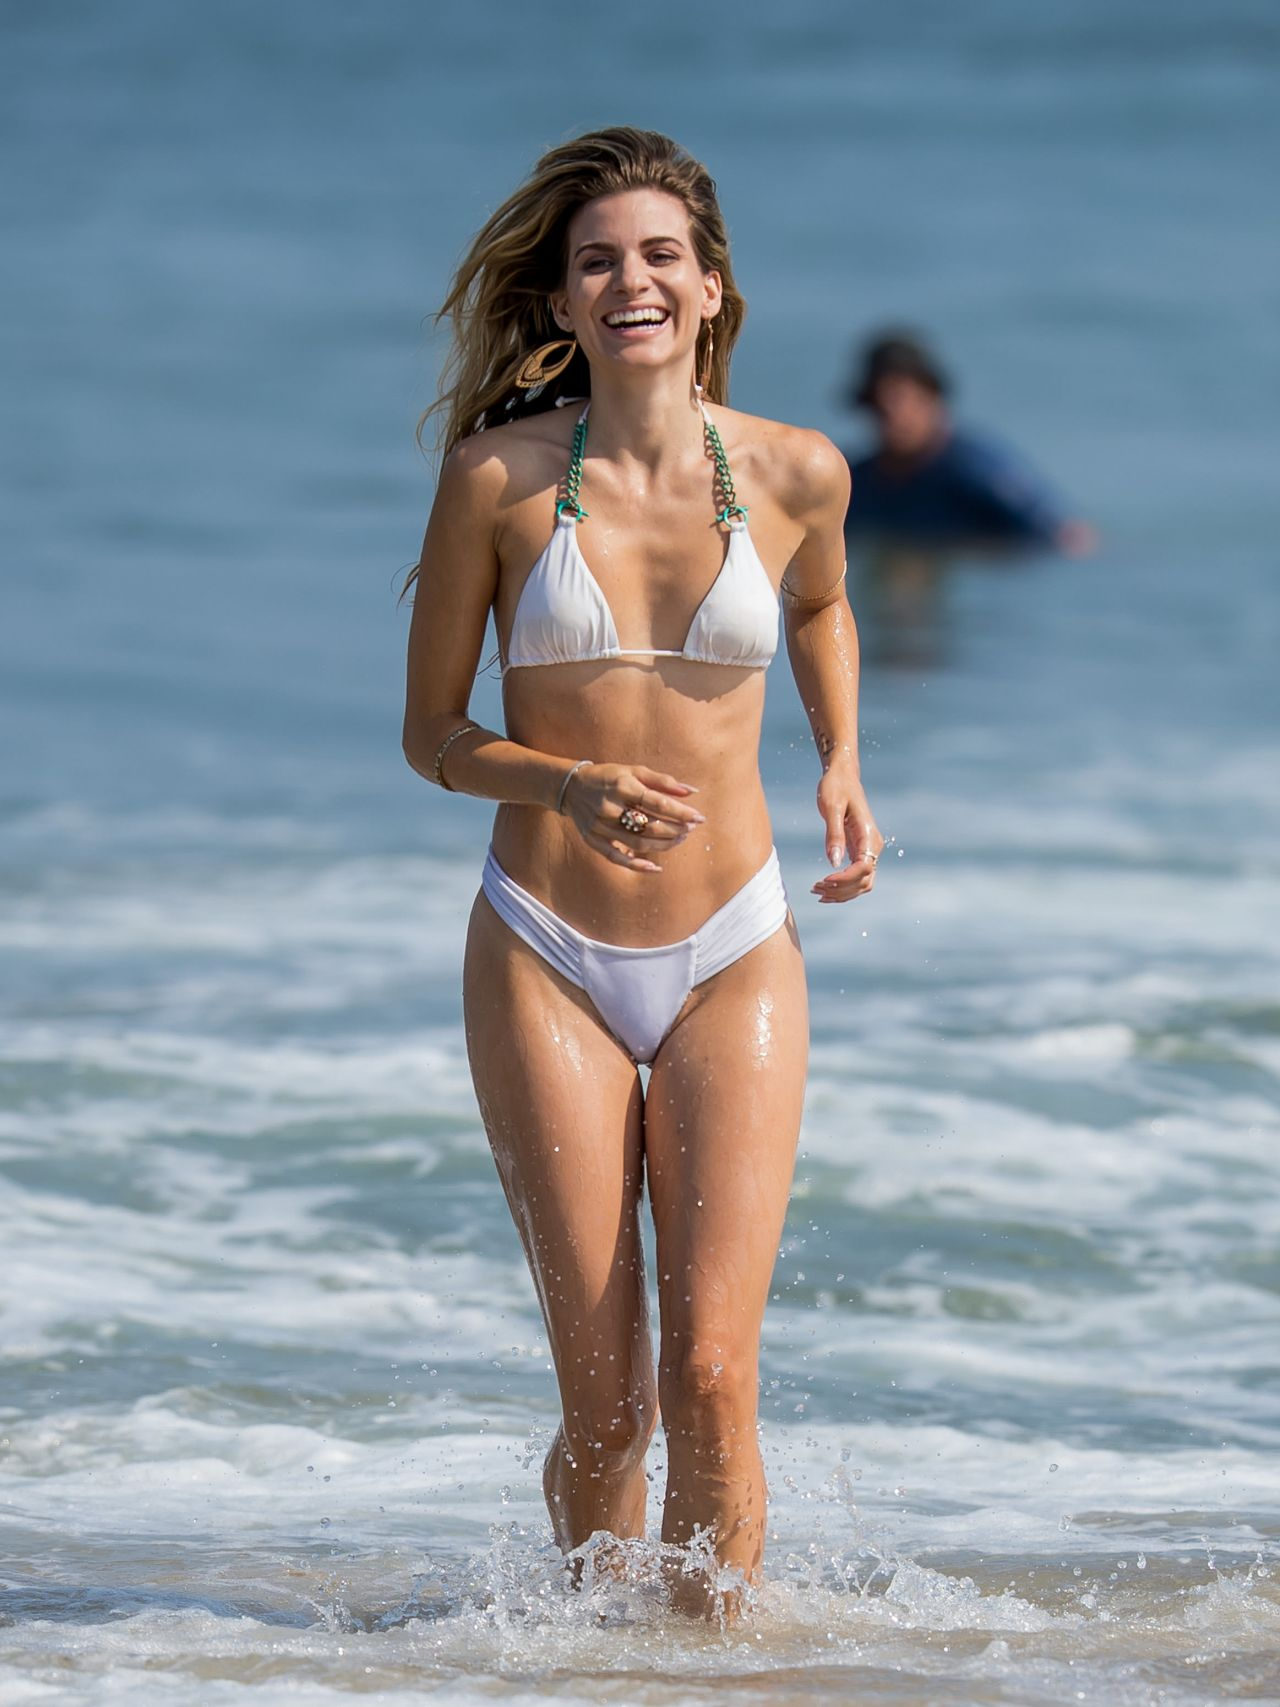 Rachel Mccord In A Bikini On A Beach In Malibu 07 30 2016